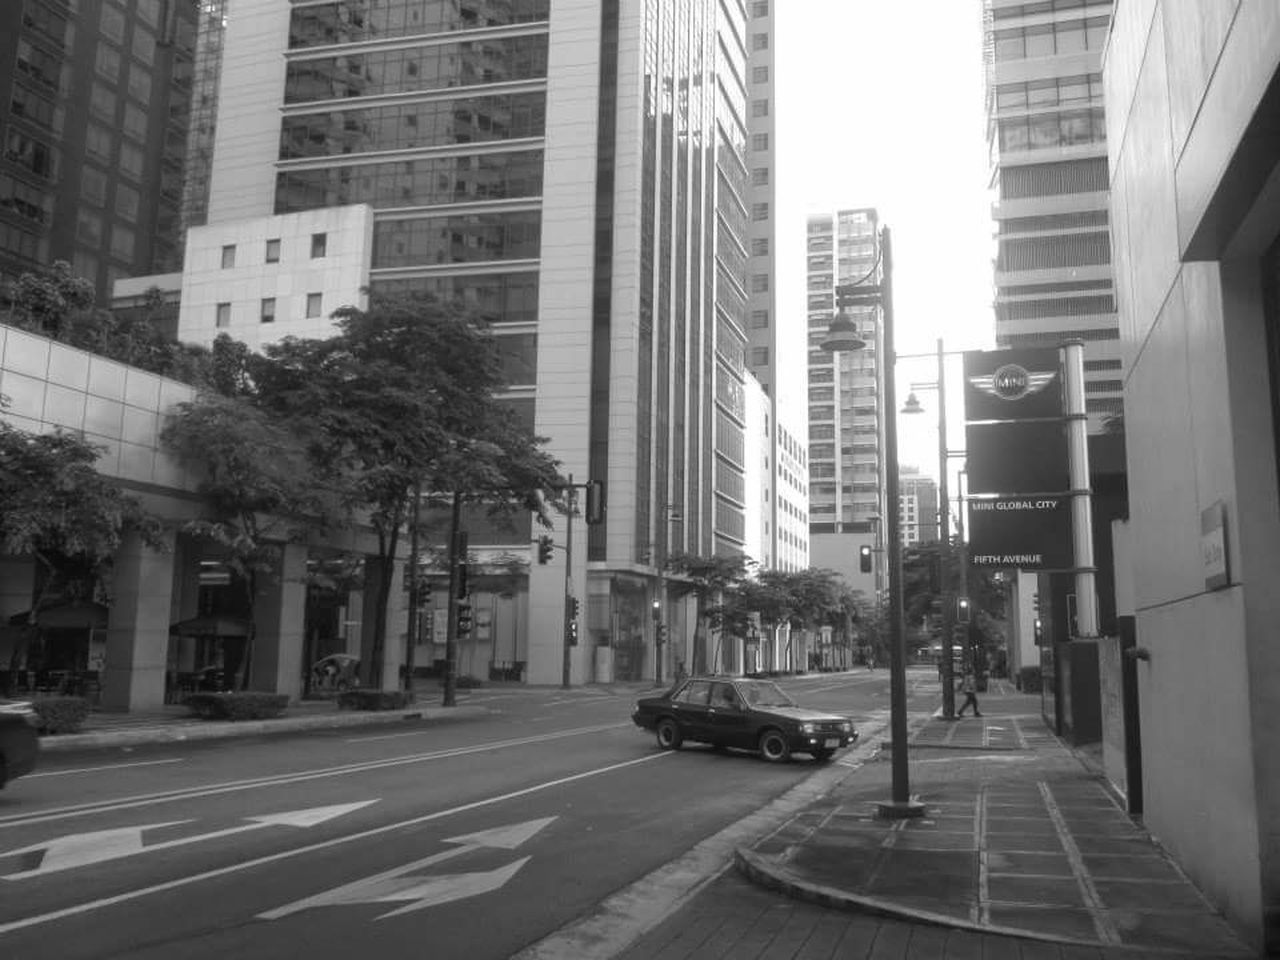 architecture, building exterior, built structure, city, street, transportation, car, city life, road, outdoors, day, land vehicle, modern, skyscraper, tree, no people